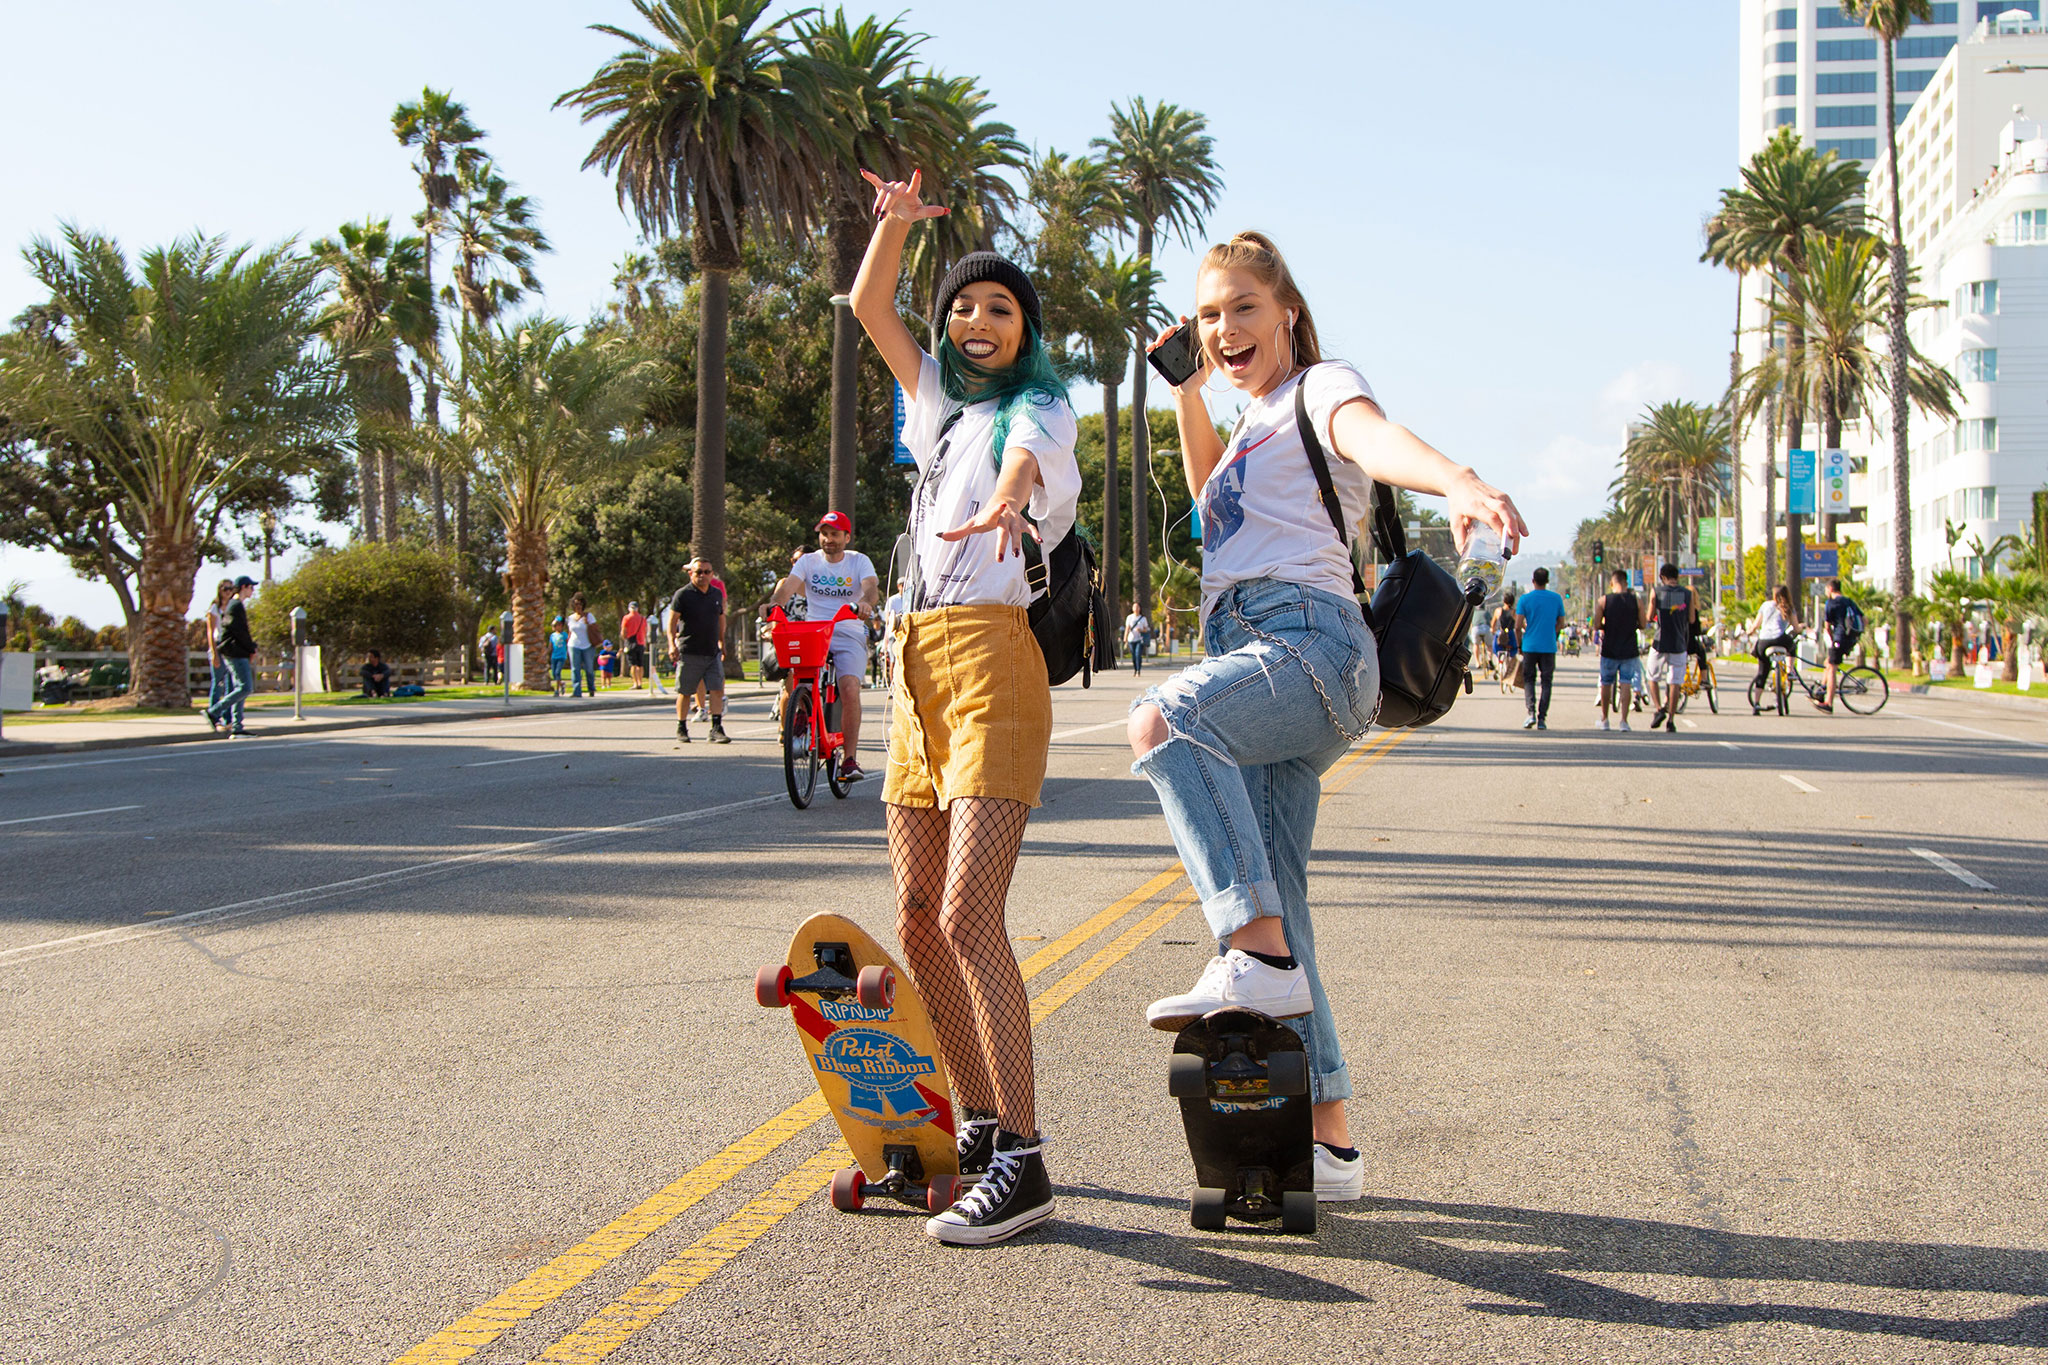 Photo: COAST visitors with skateboards, enjoying an open street with no cars present.